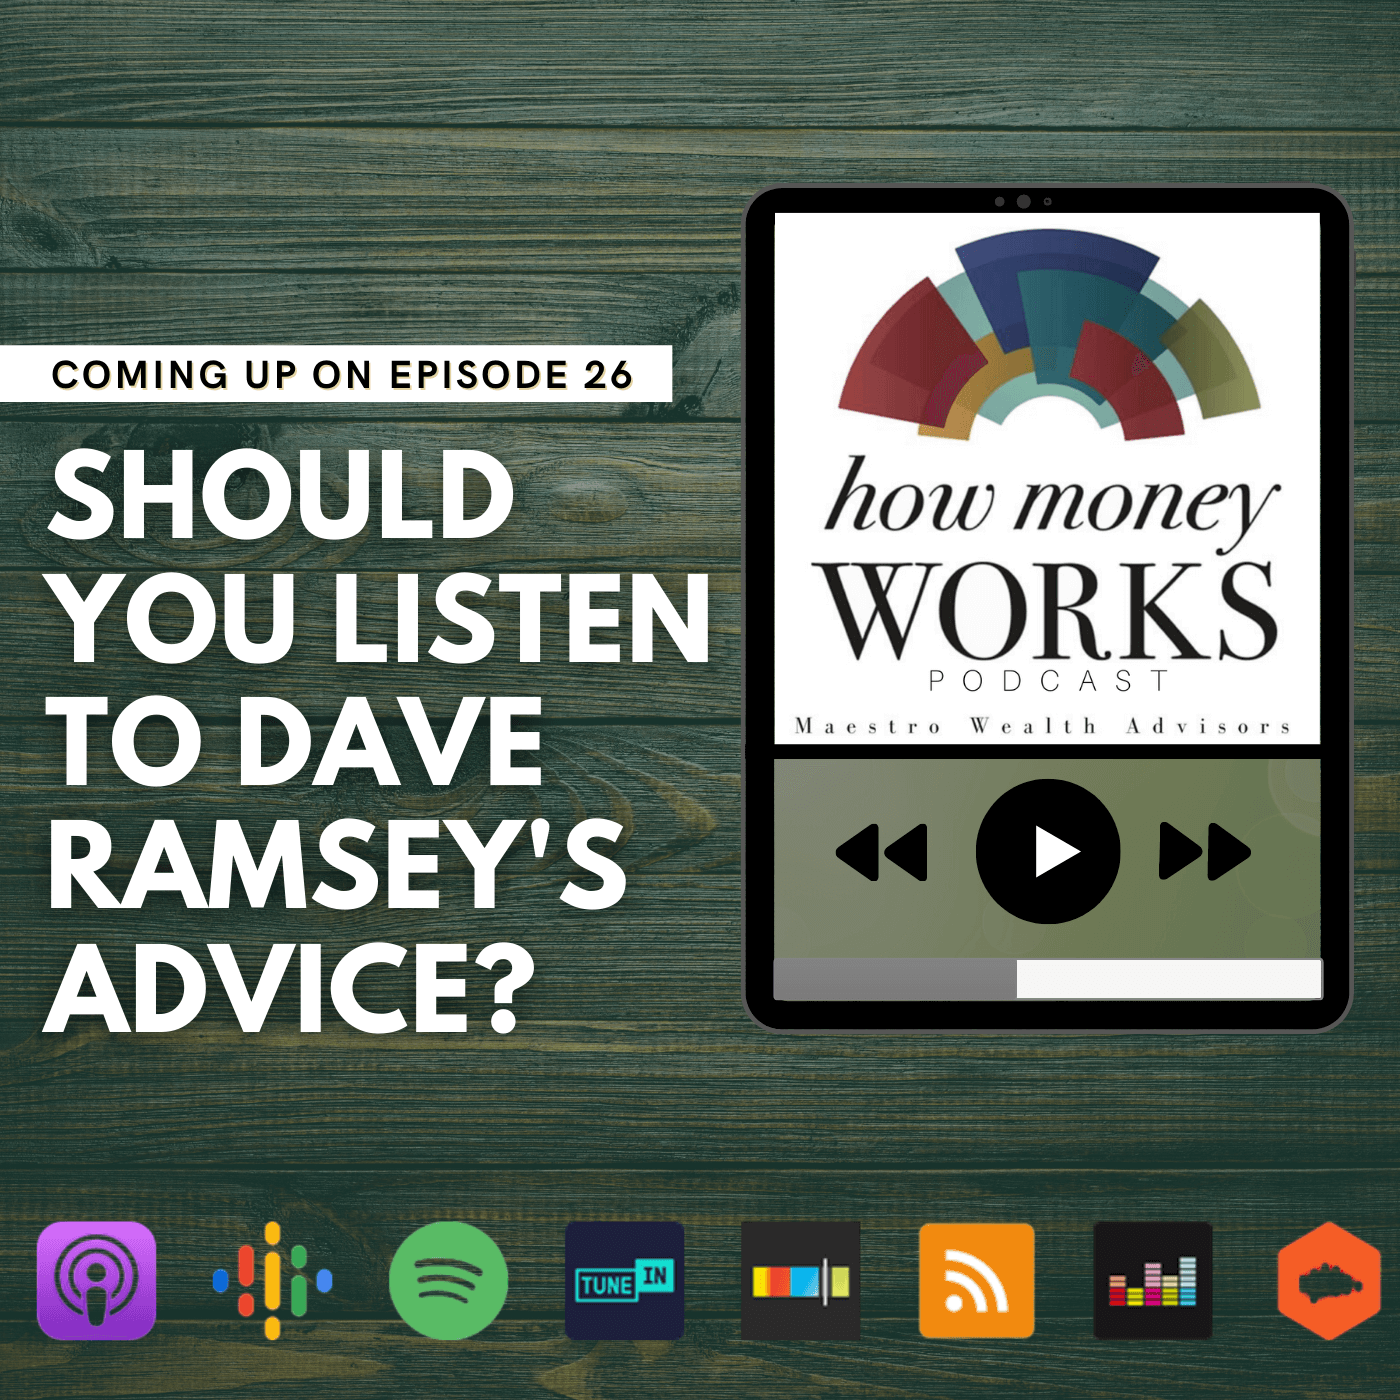 Should you listen to Dave Ramsey's advice?